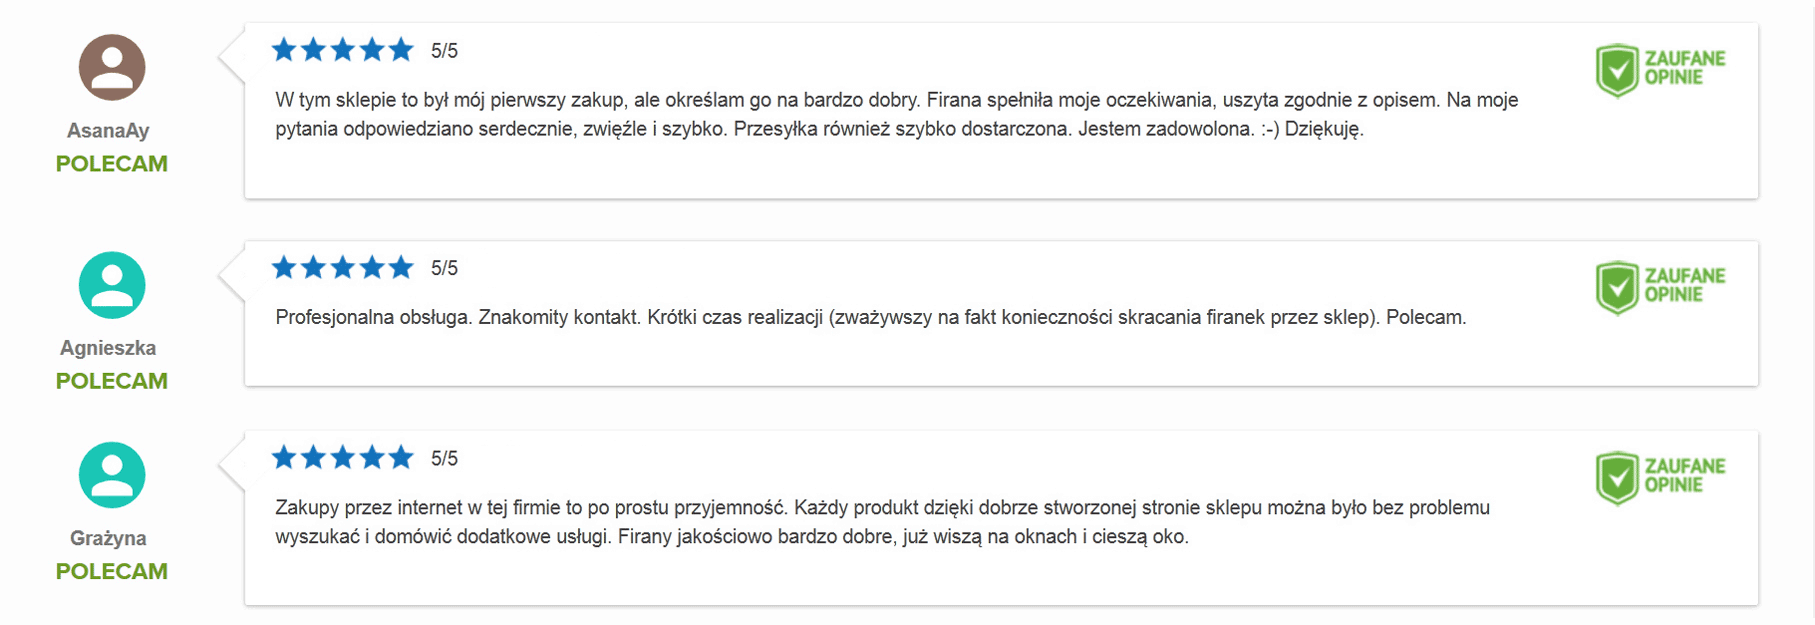 Opinie o firaneo.pl